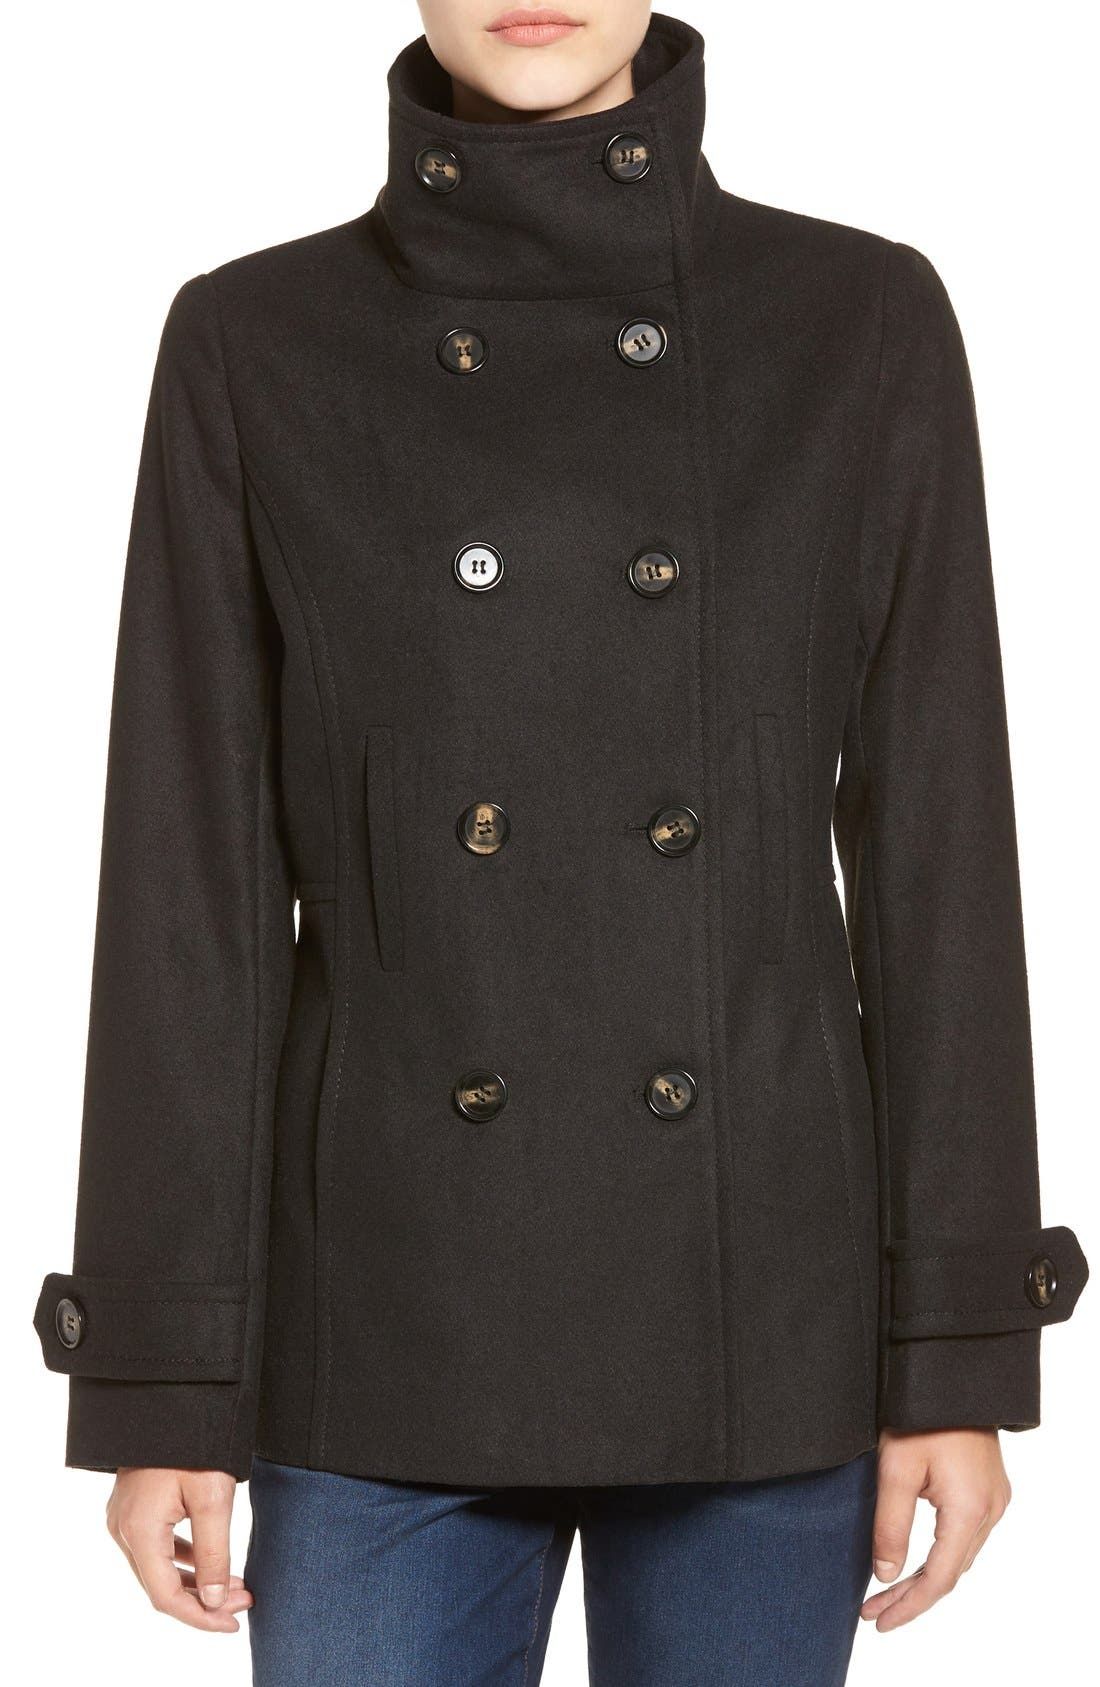 THREAD & SUPPLY,                             Double Breasted Peacoat,                             Alternate thumbnail 7, color,                             BLACK